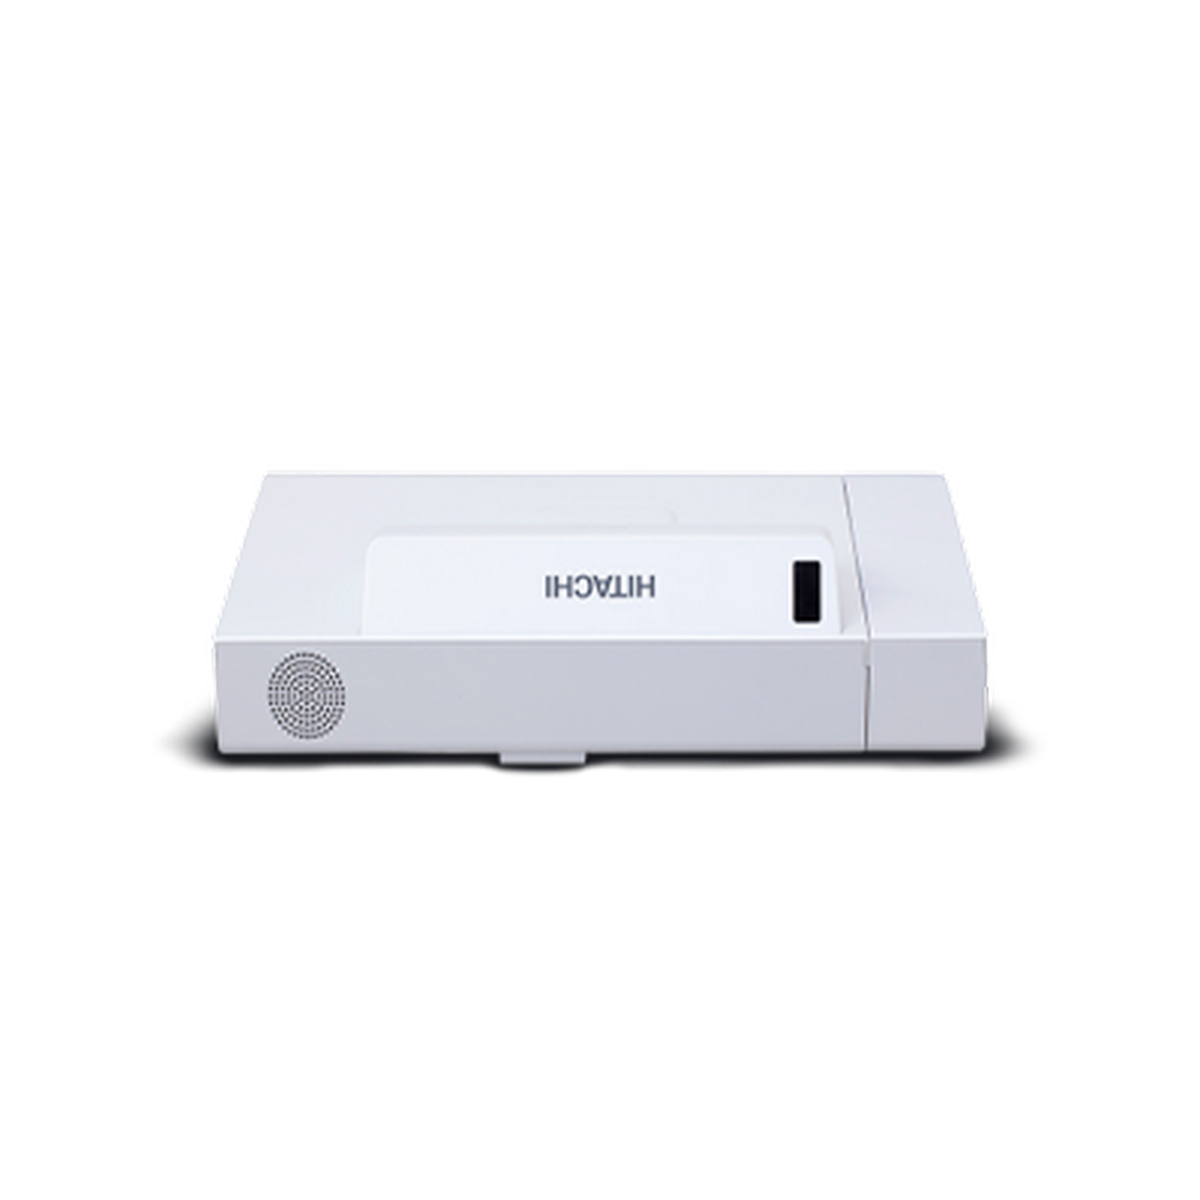 Hitachi Ultimate Short Throw projector 80